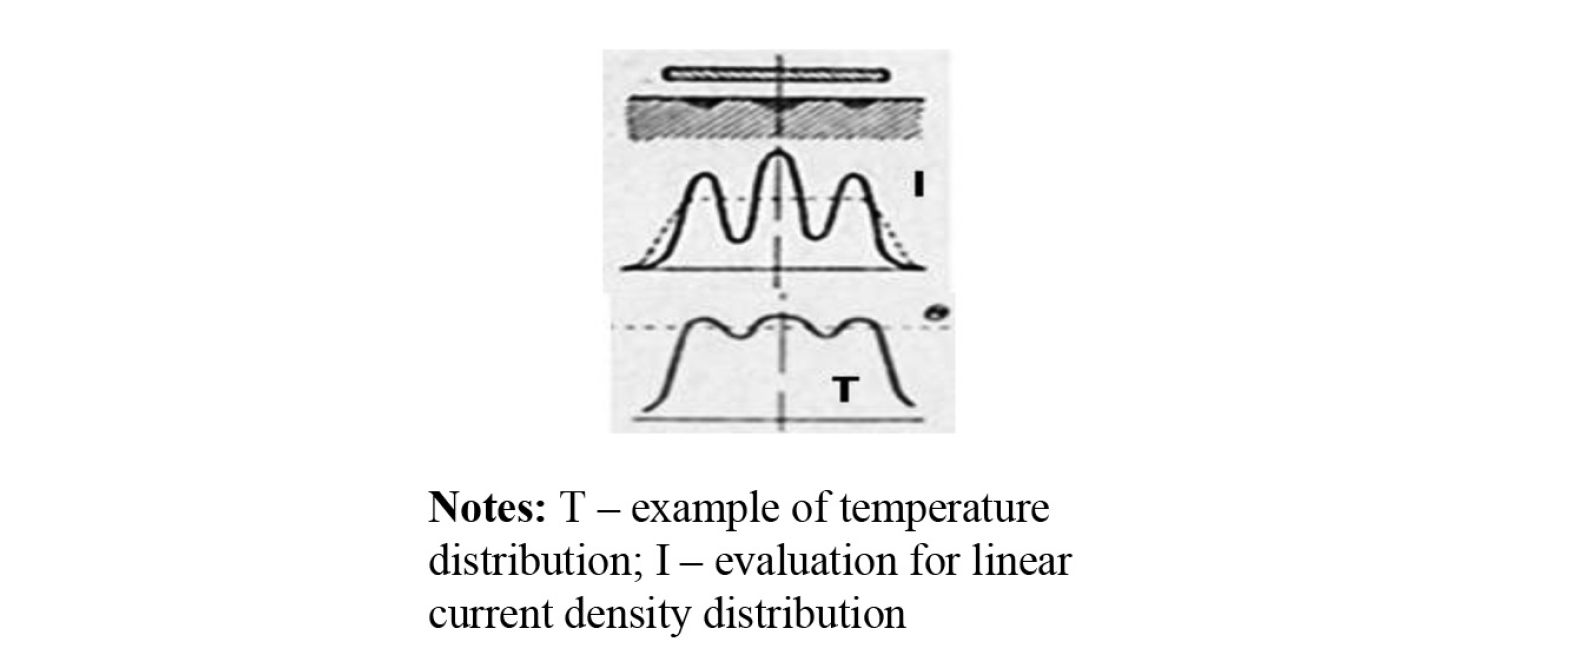 Fluxtrol - HES 2016 Striation Effect in Induction Heating: Myths and Reality - Figure 2